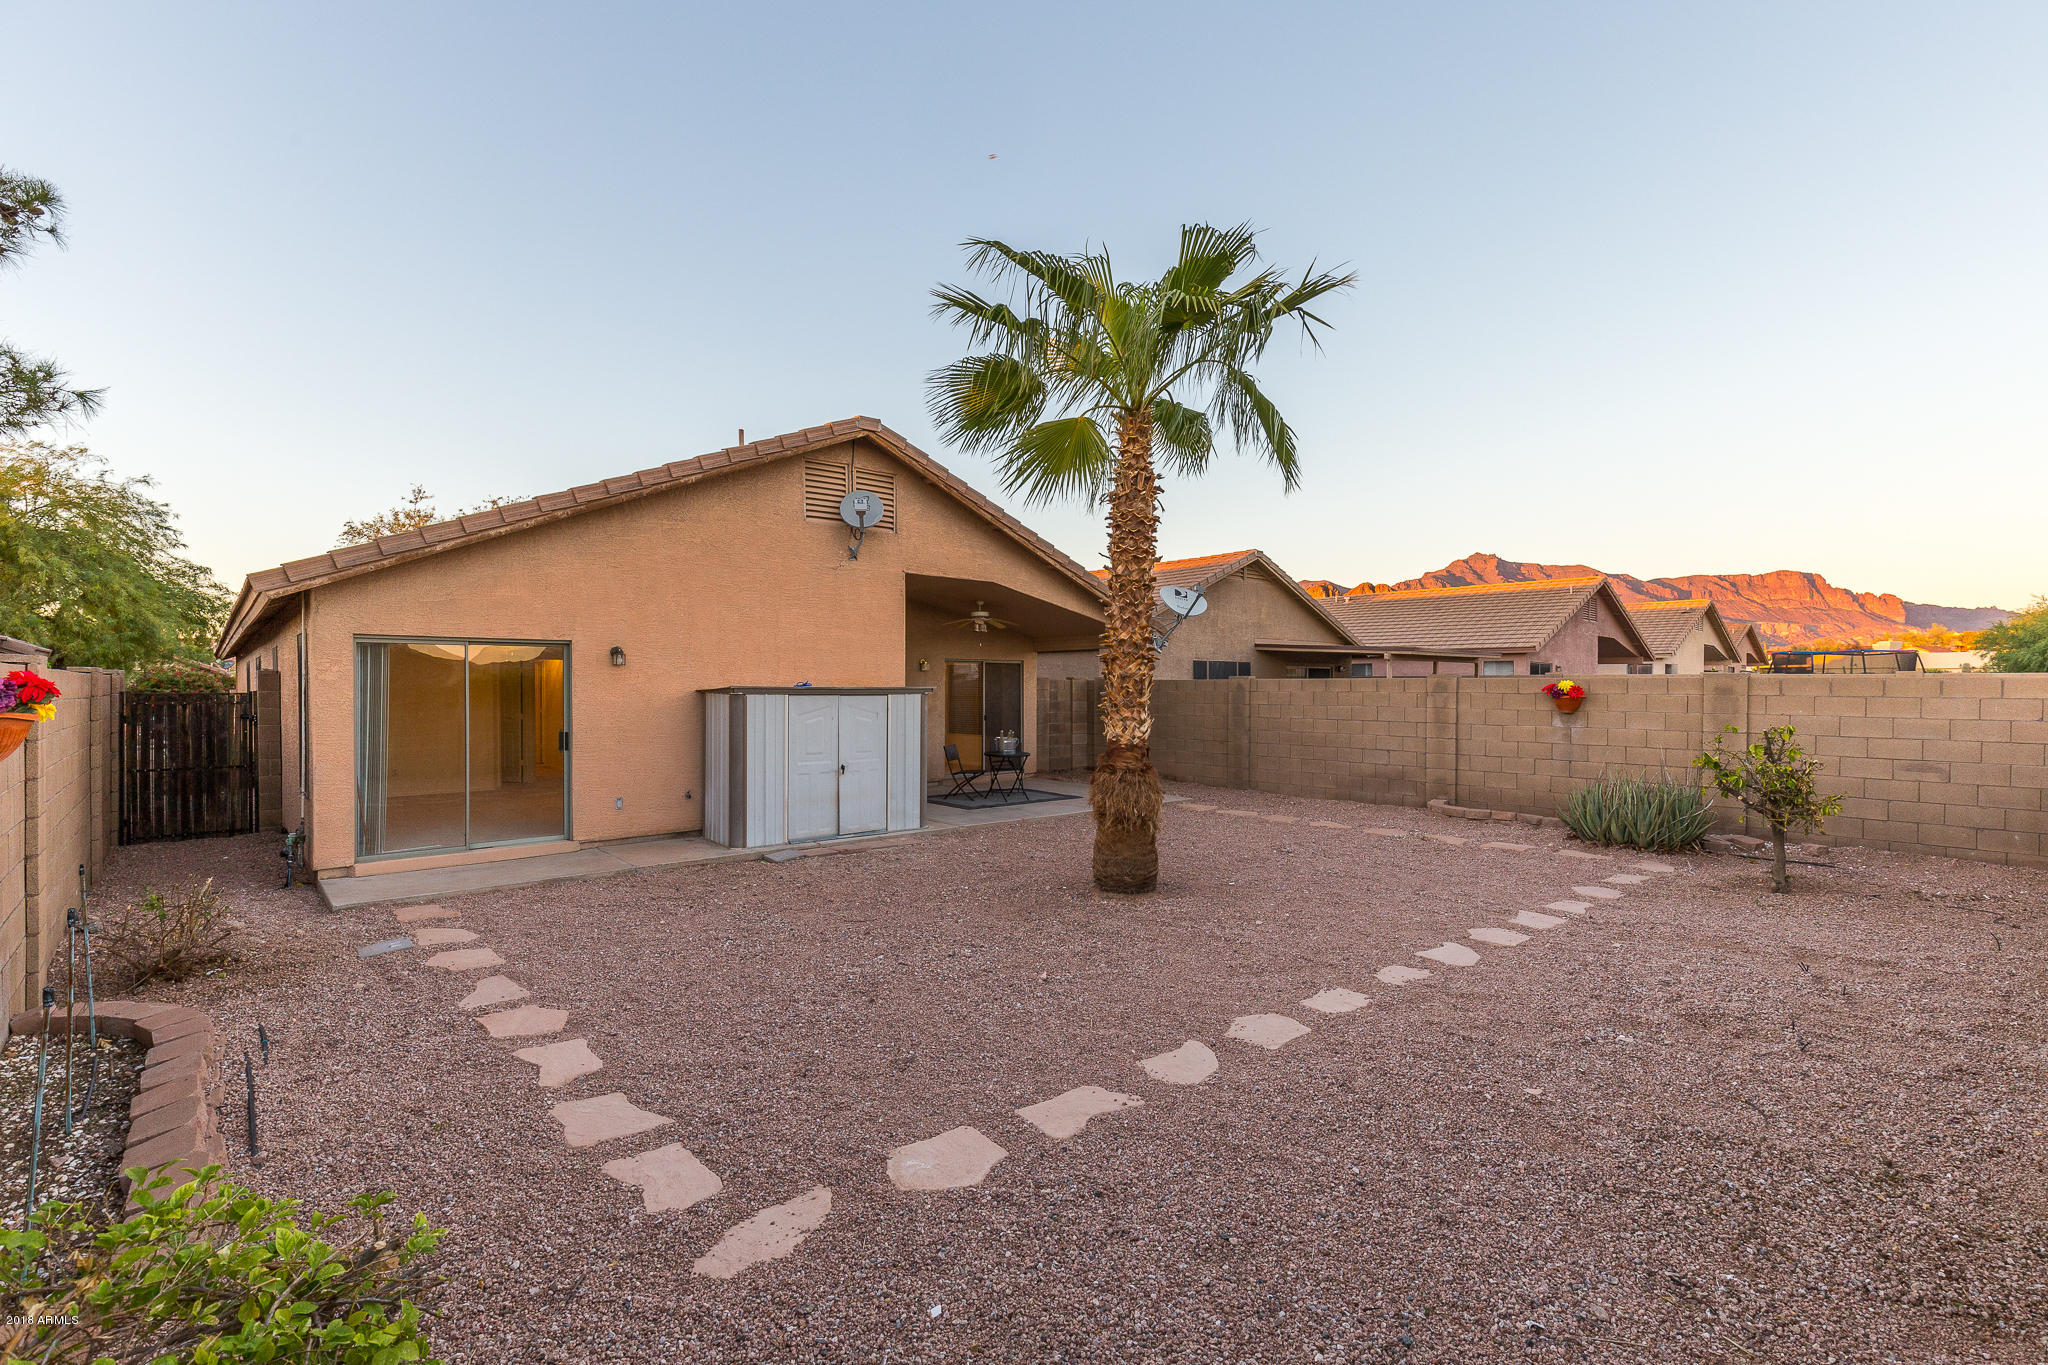 MLS 5840471 8923 E AVENIDA LAS NOCHES --, Gold Canyon, AZ 85118 Gold Canyon AZ Gold Canyon Ranch